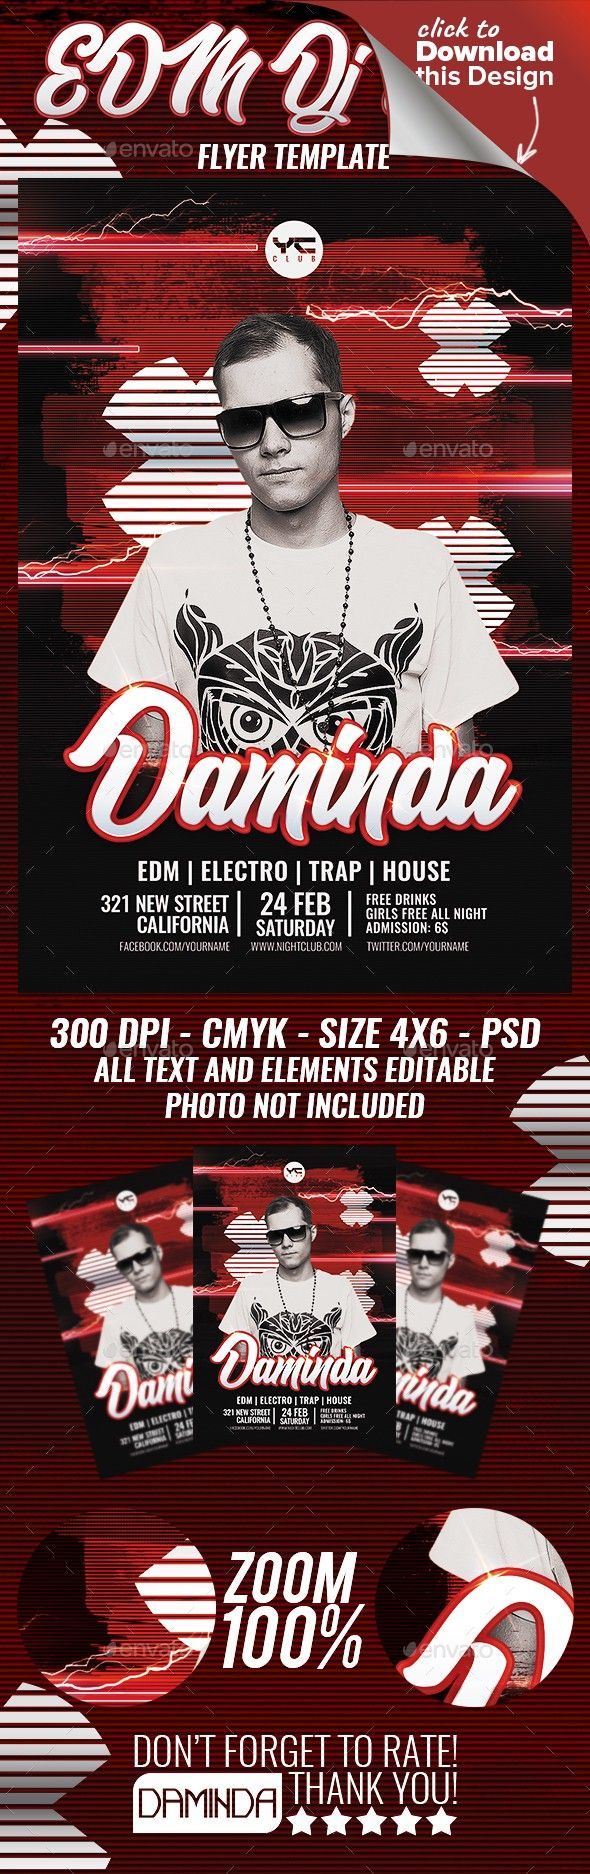 Electro Dj Poster 8 Flyer Template